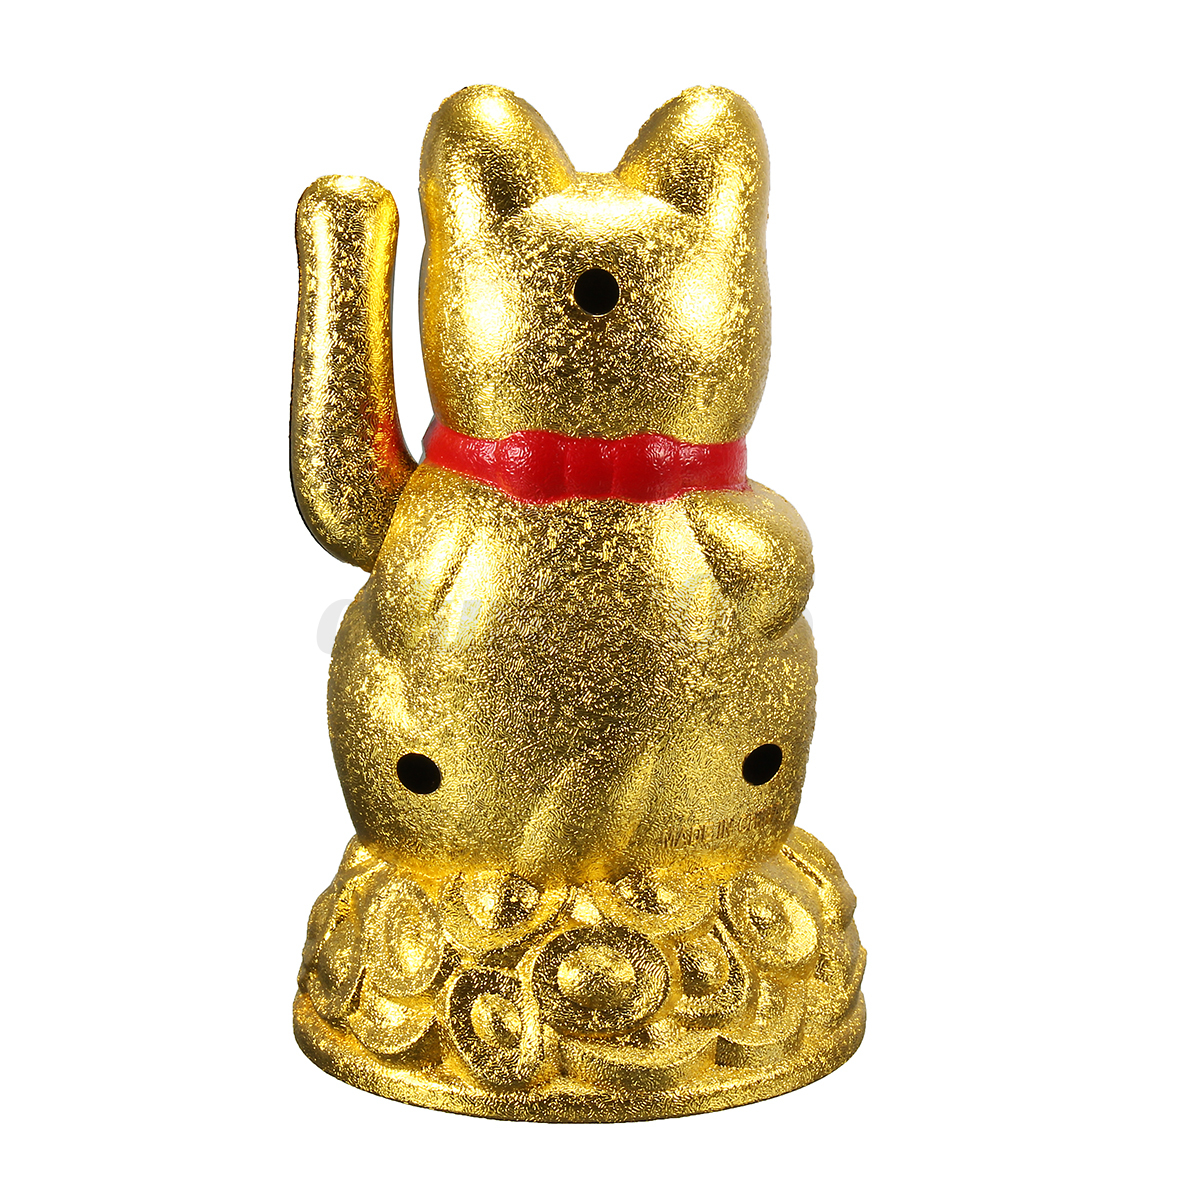 4 5 feng shui fortune gold ingot chinese lucky wealth waving cat by aa battery ebay. Black Bedroom Furniture Sets. Home Design Ideas